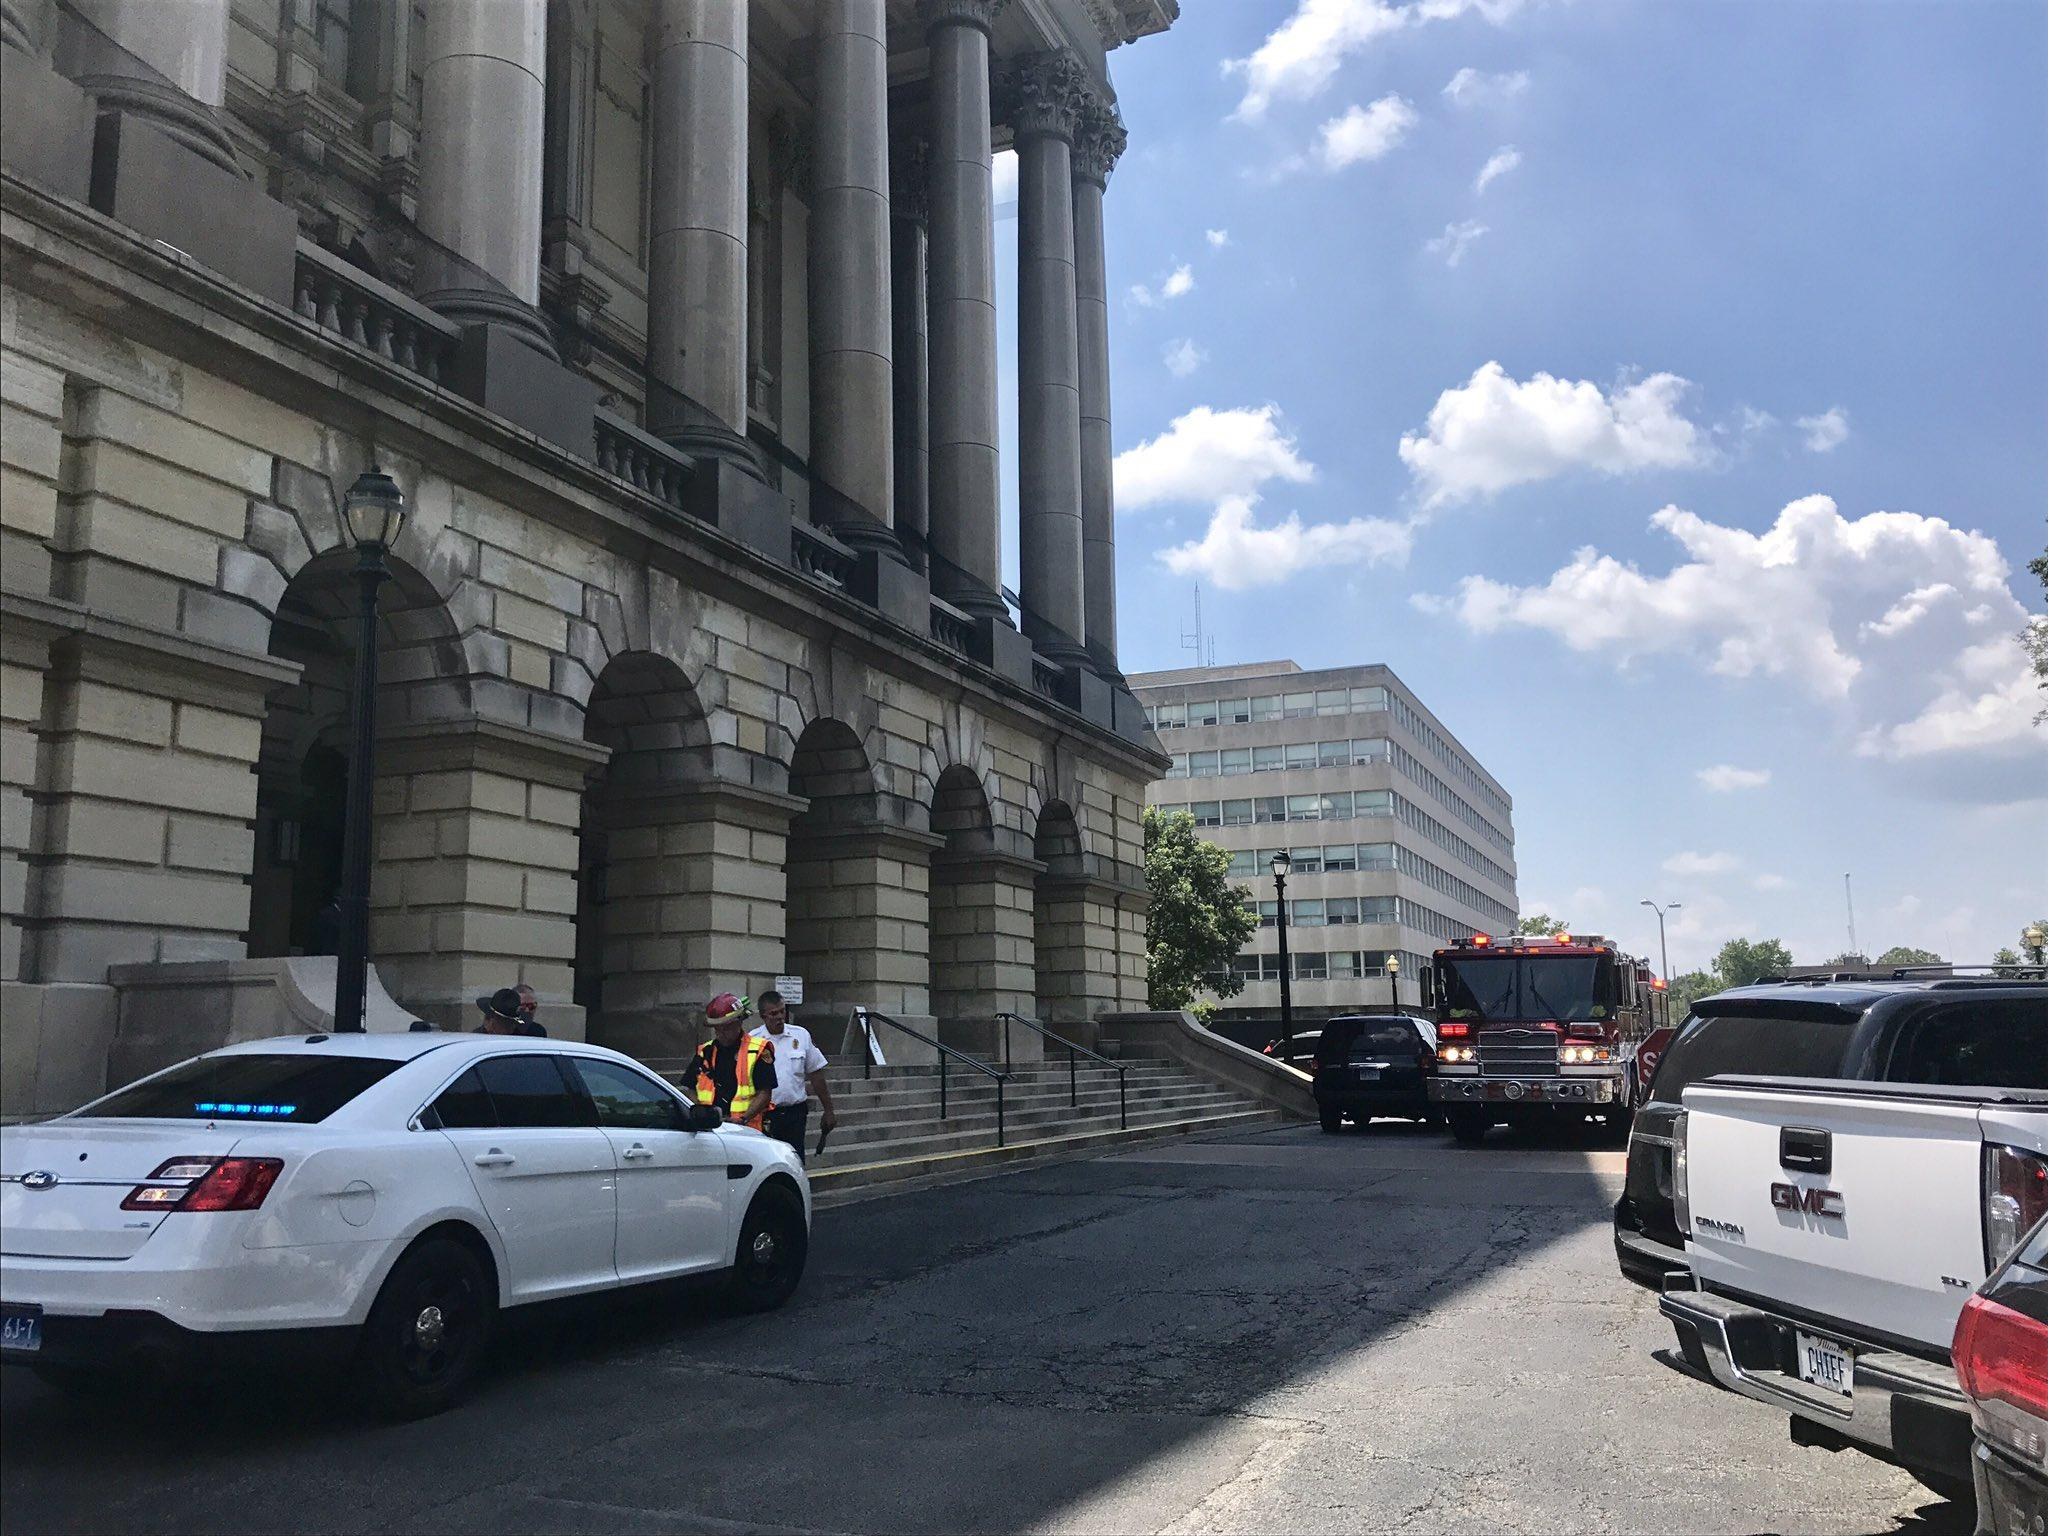 Budget vote delayed as Capitol building on lockdown